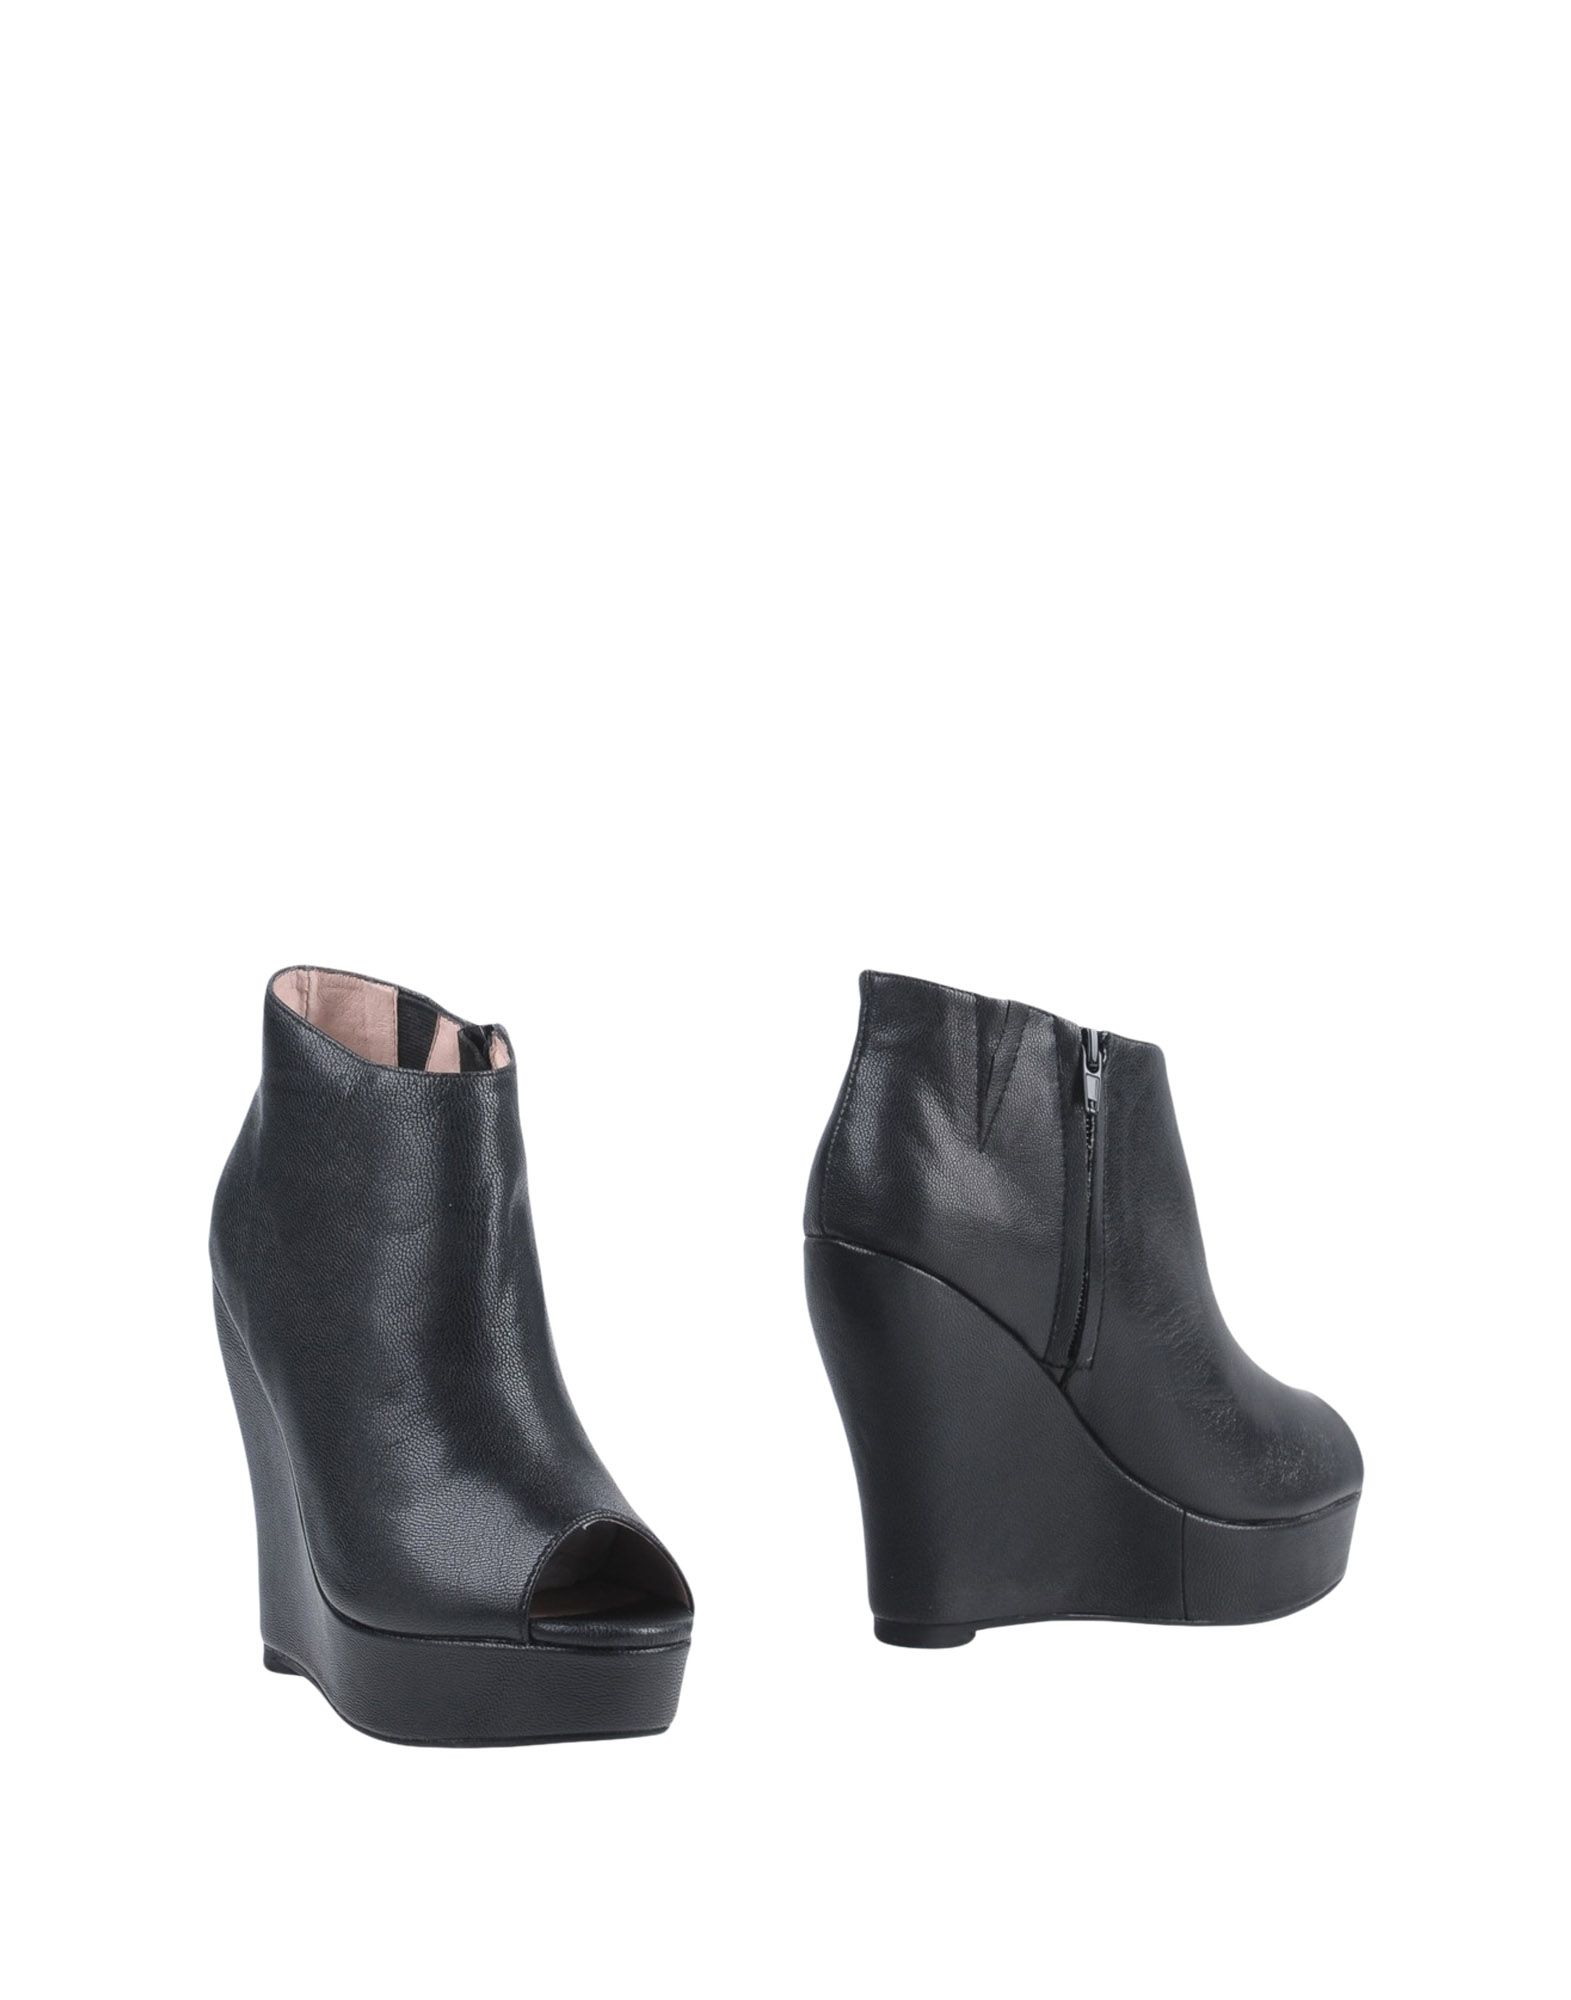 Bottine Jeffrey Campbell Femme - Bottines Jeffrey Campbell sur